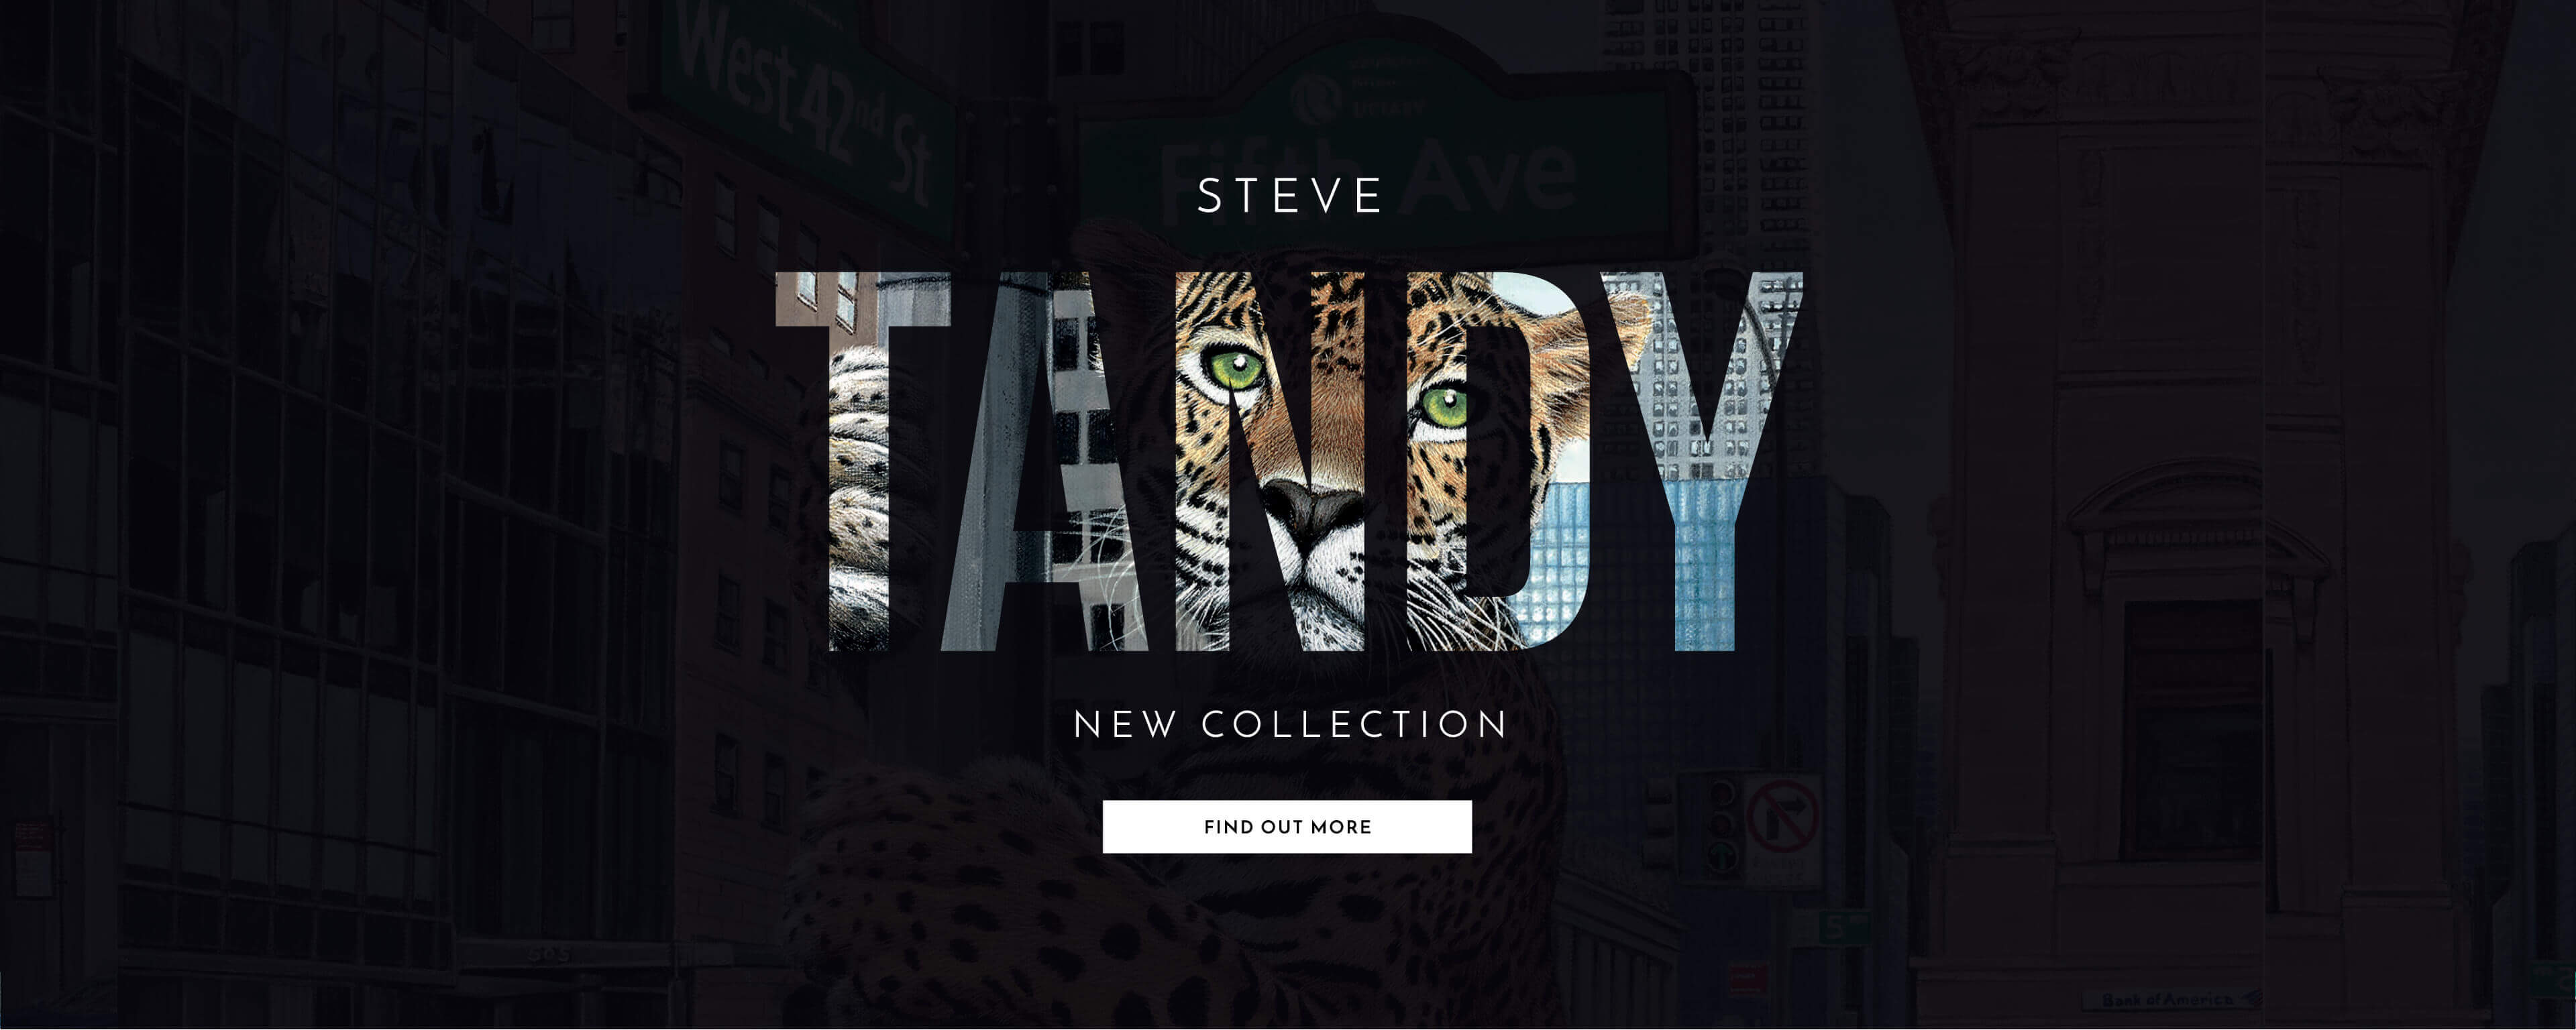 Steve Tandy | New Releases